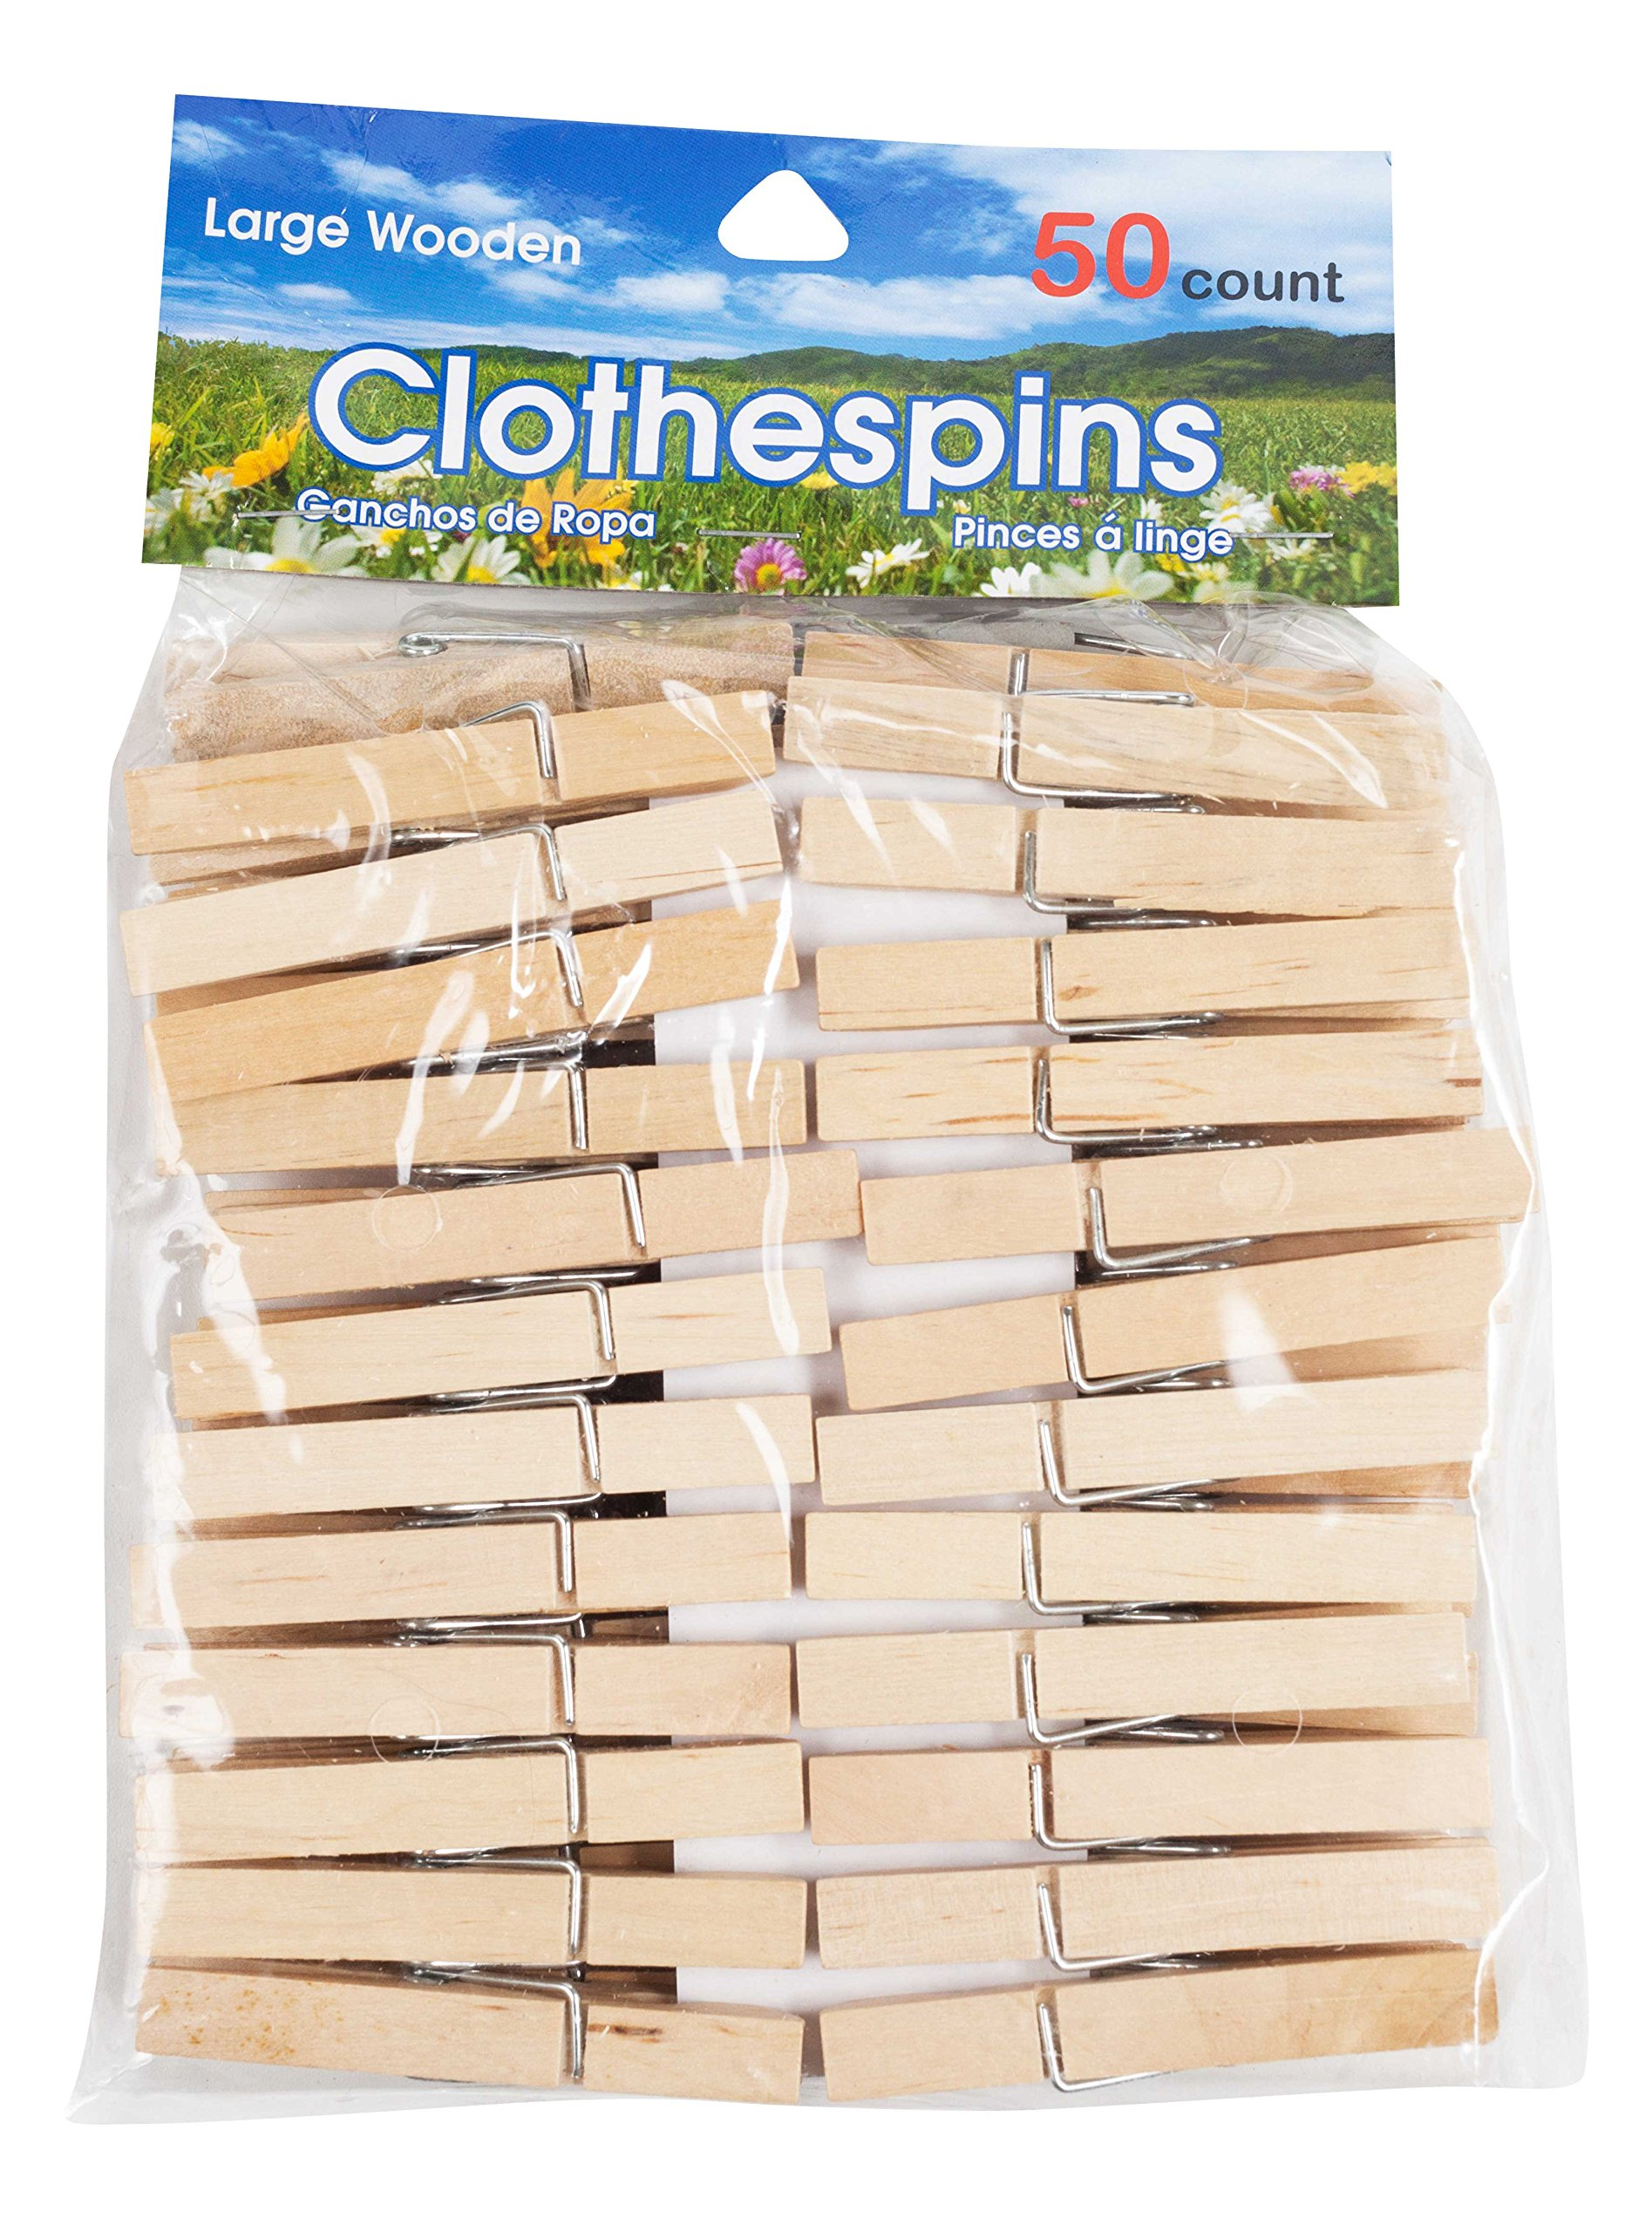 Brite Concepts Large Wooden Clothespins, 50 Count, 2-pack (100 Clothespins)